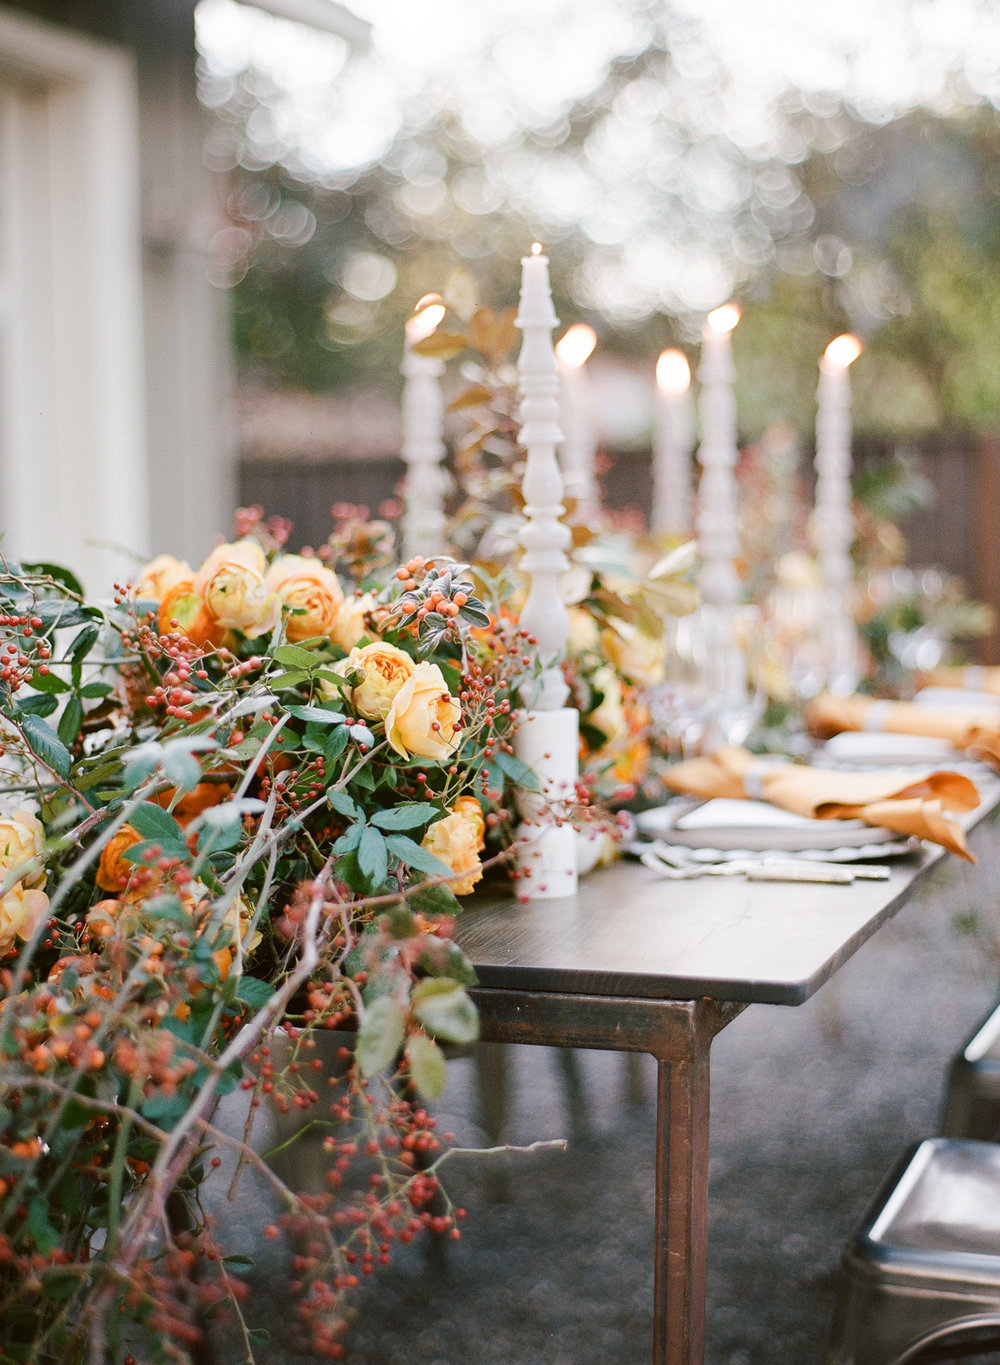 Max Gill foraged floral table runner includes orange roses and ranunculus, and persimmon branches; Sylvie Gil Photography